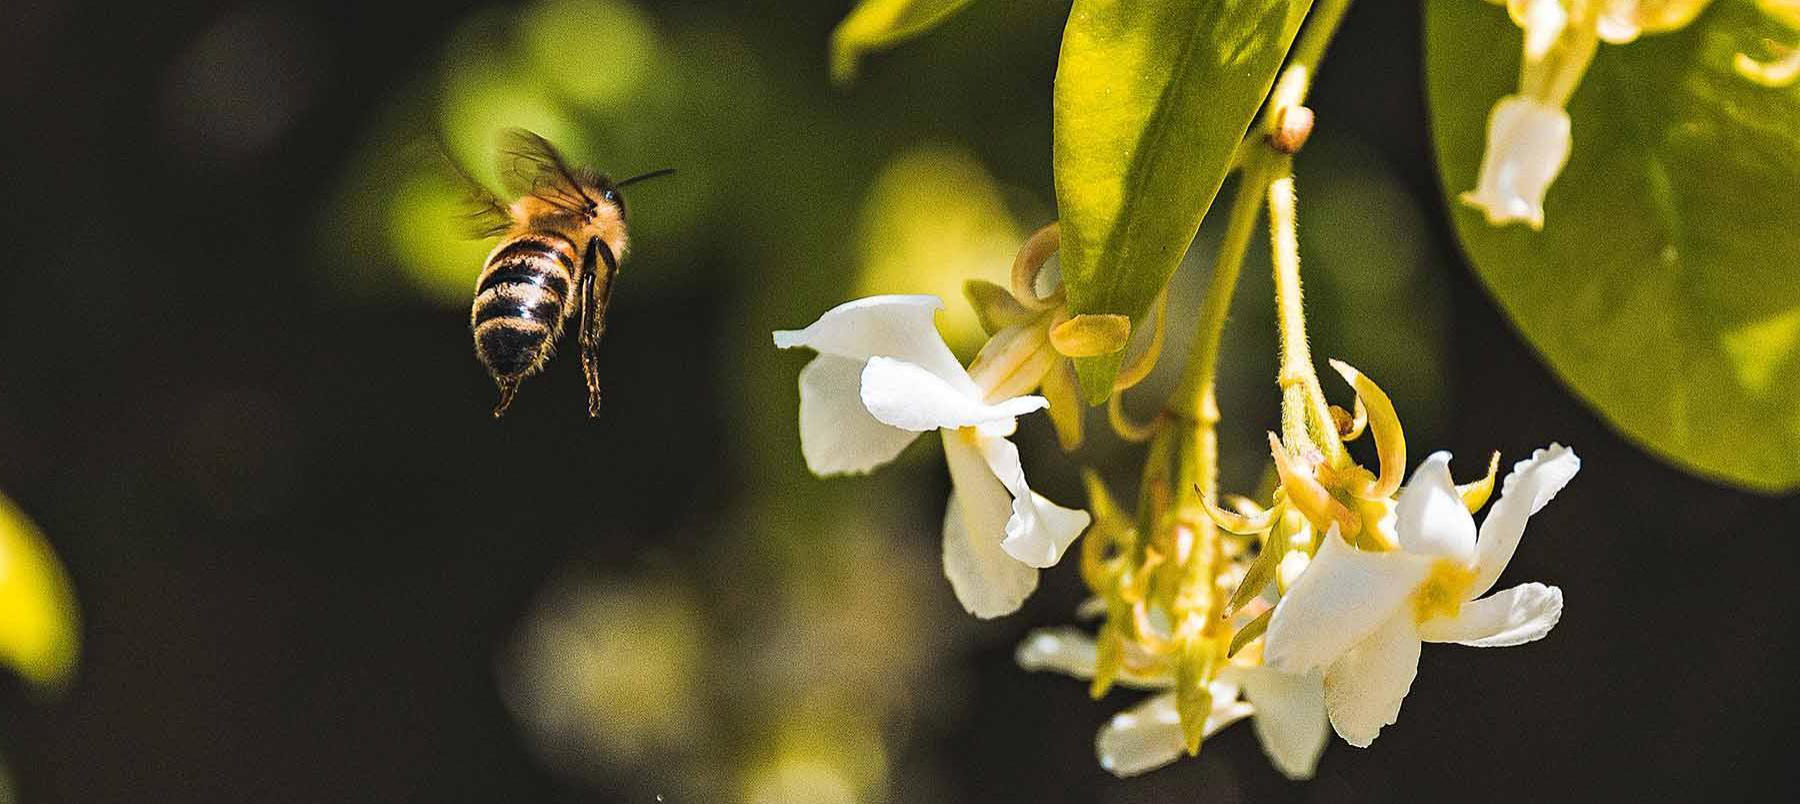 image of a bee approaching a flower